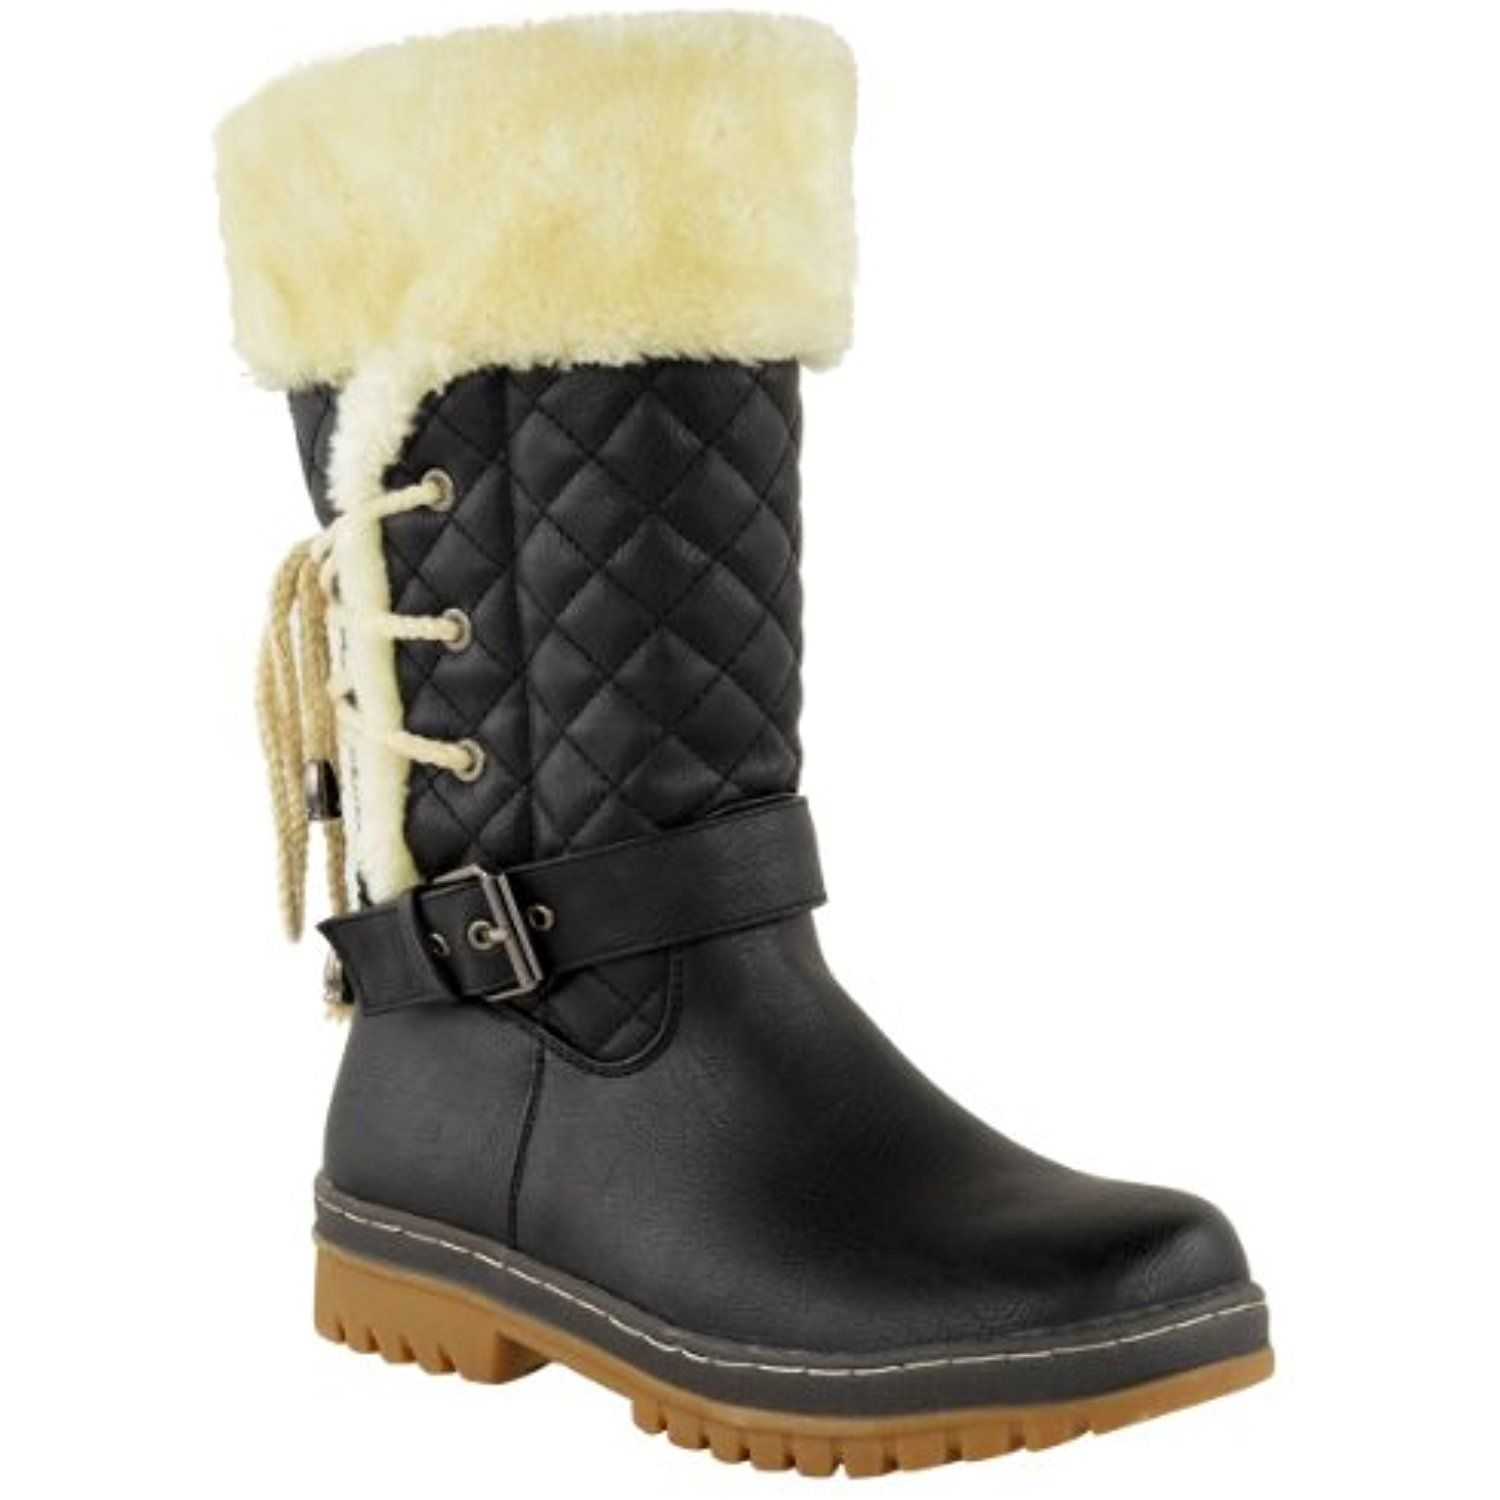 Womens Ladies Faux Fur Lined Girls Mid Calf Quilted Flat Winter Snow Boots Size